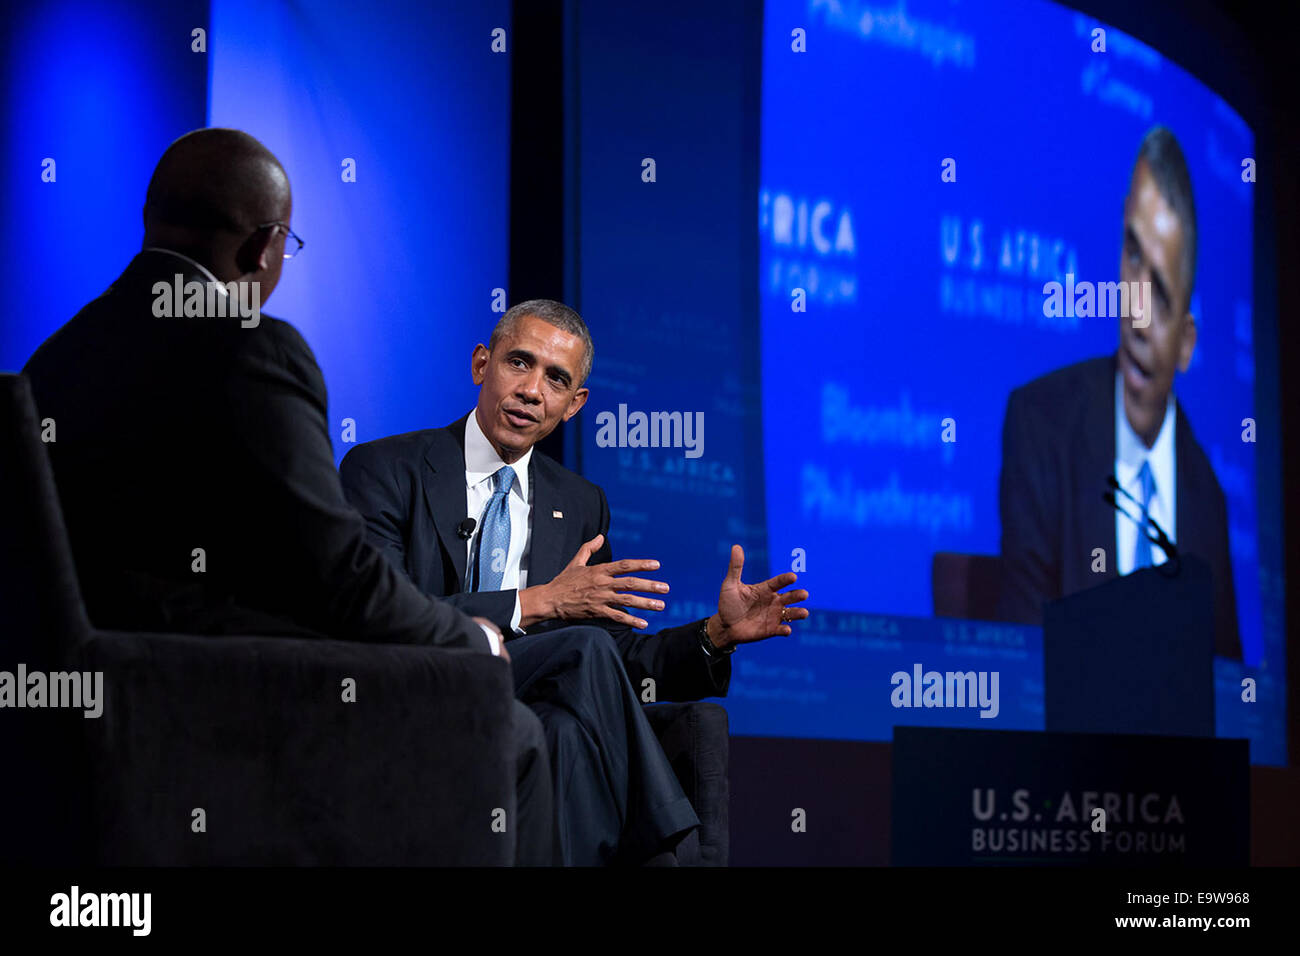 President Barack Obama participates in a discussion with moderator Takunda Chingonzo at the U.S.-Africa BusinessStock Photo